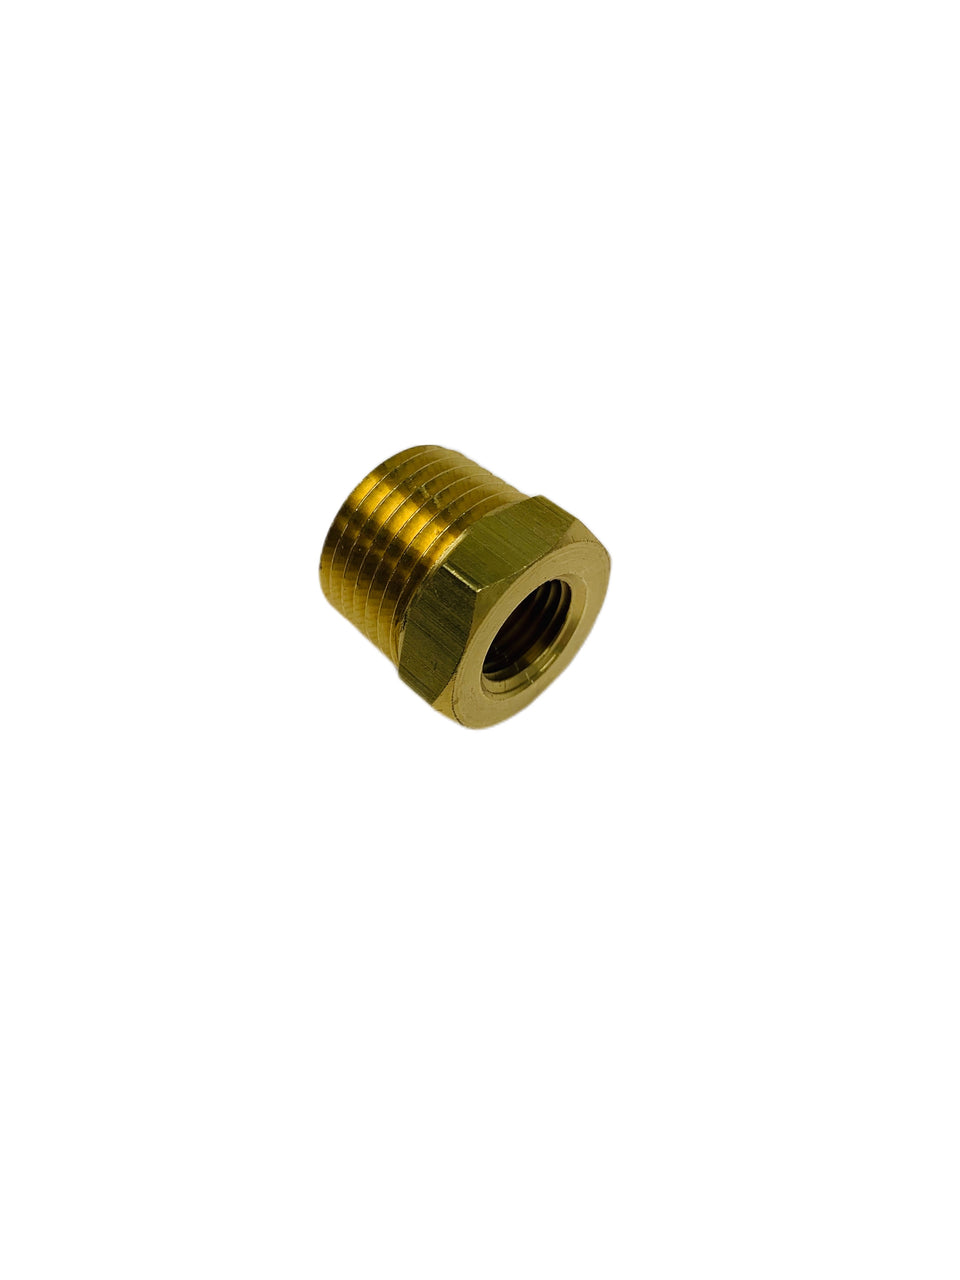 "Brass P-100-84 Female to Male Hex Bushing Pipe 1/4"" x 1/2"" Adapter Fitting Qty10"